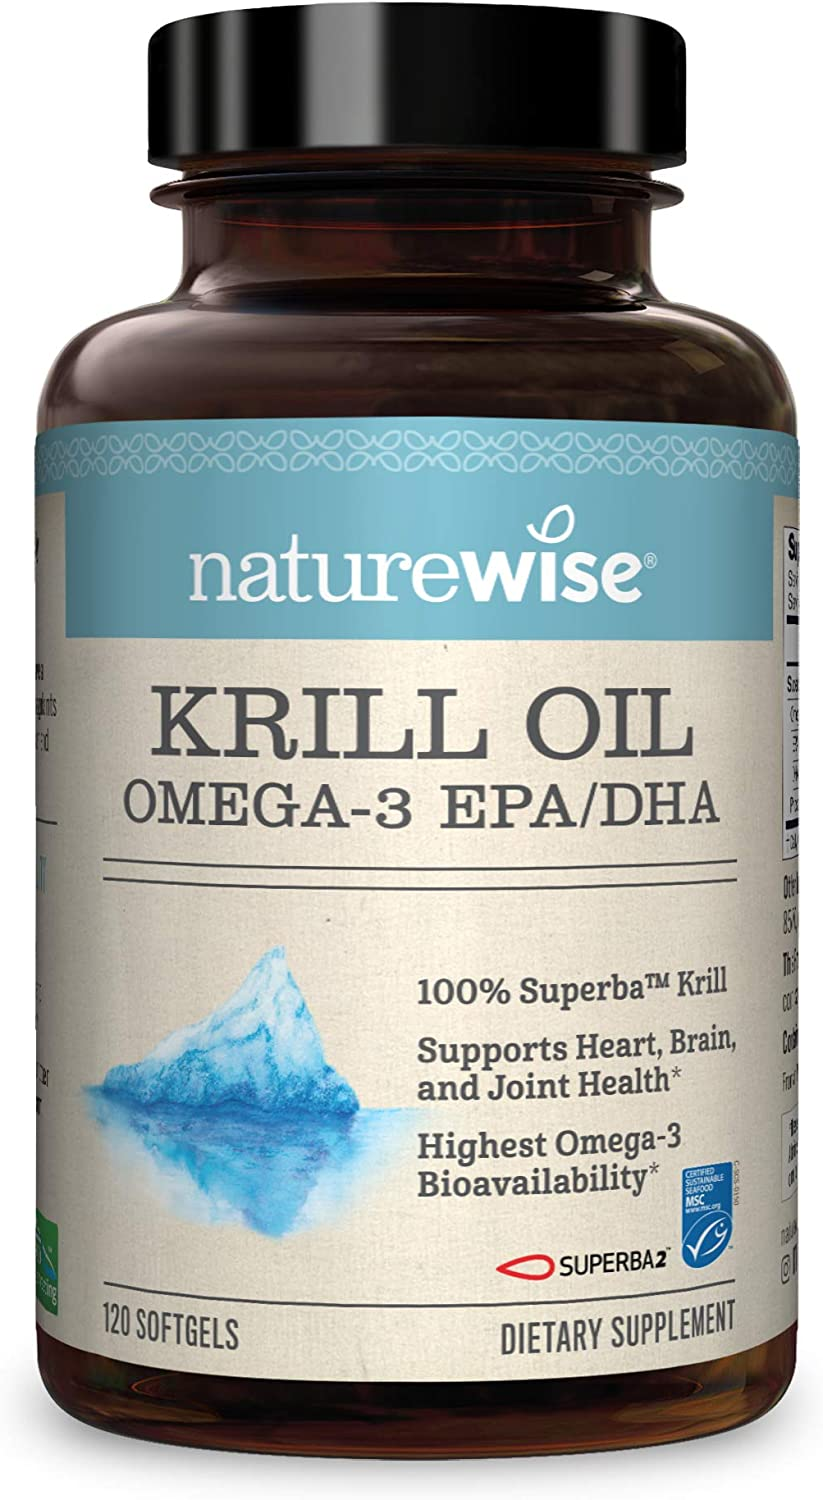 NatureWise Wild-Caught Krill Oil (2 Month Supply) Heart Health and Mobility Support with EPA & DHA Omega-3s and Astaxanthin for Organ Vitality and Joint Flexibility (120 Count – 2 Month Supply)